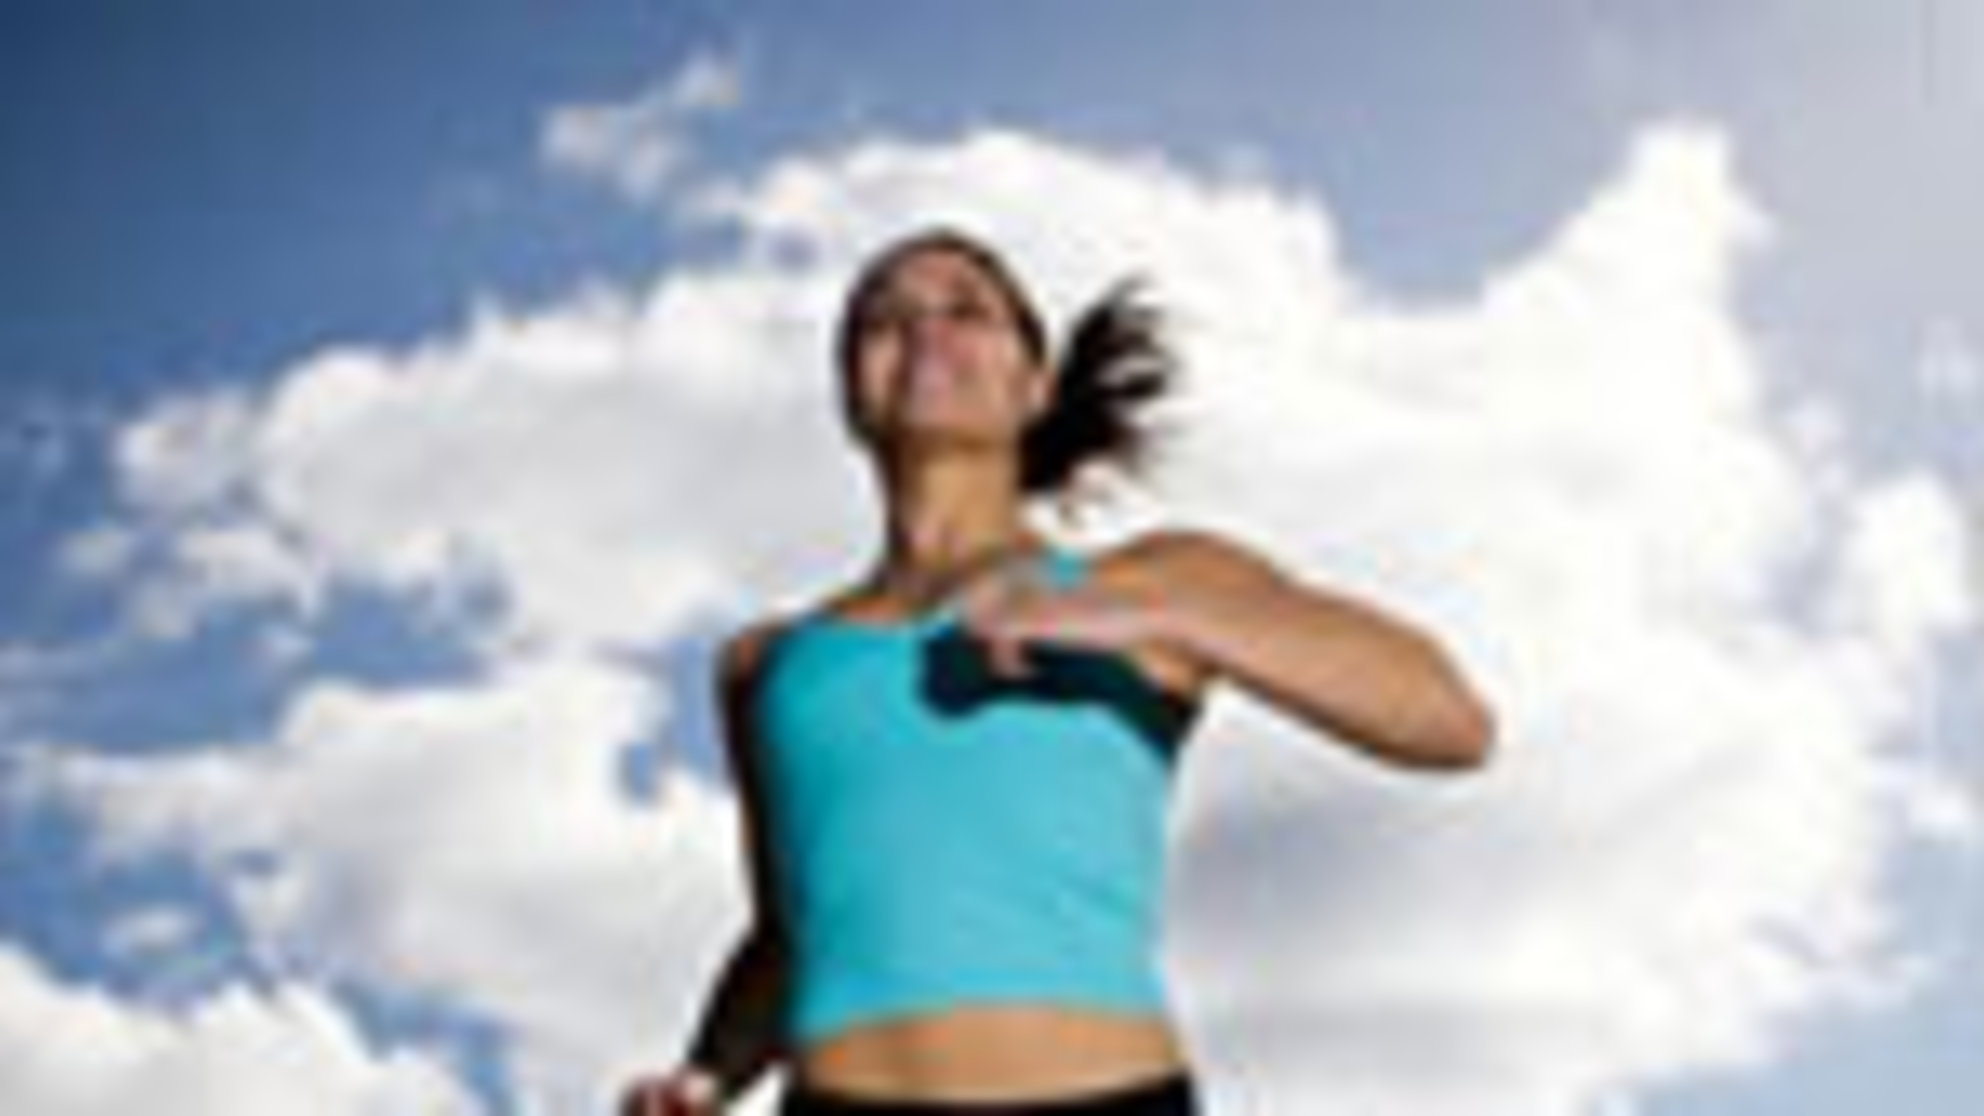 What's Healthier: Cardio or Spot Training?